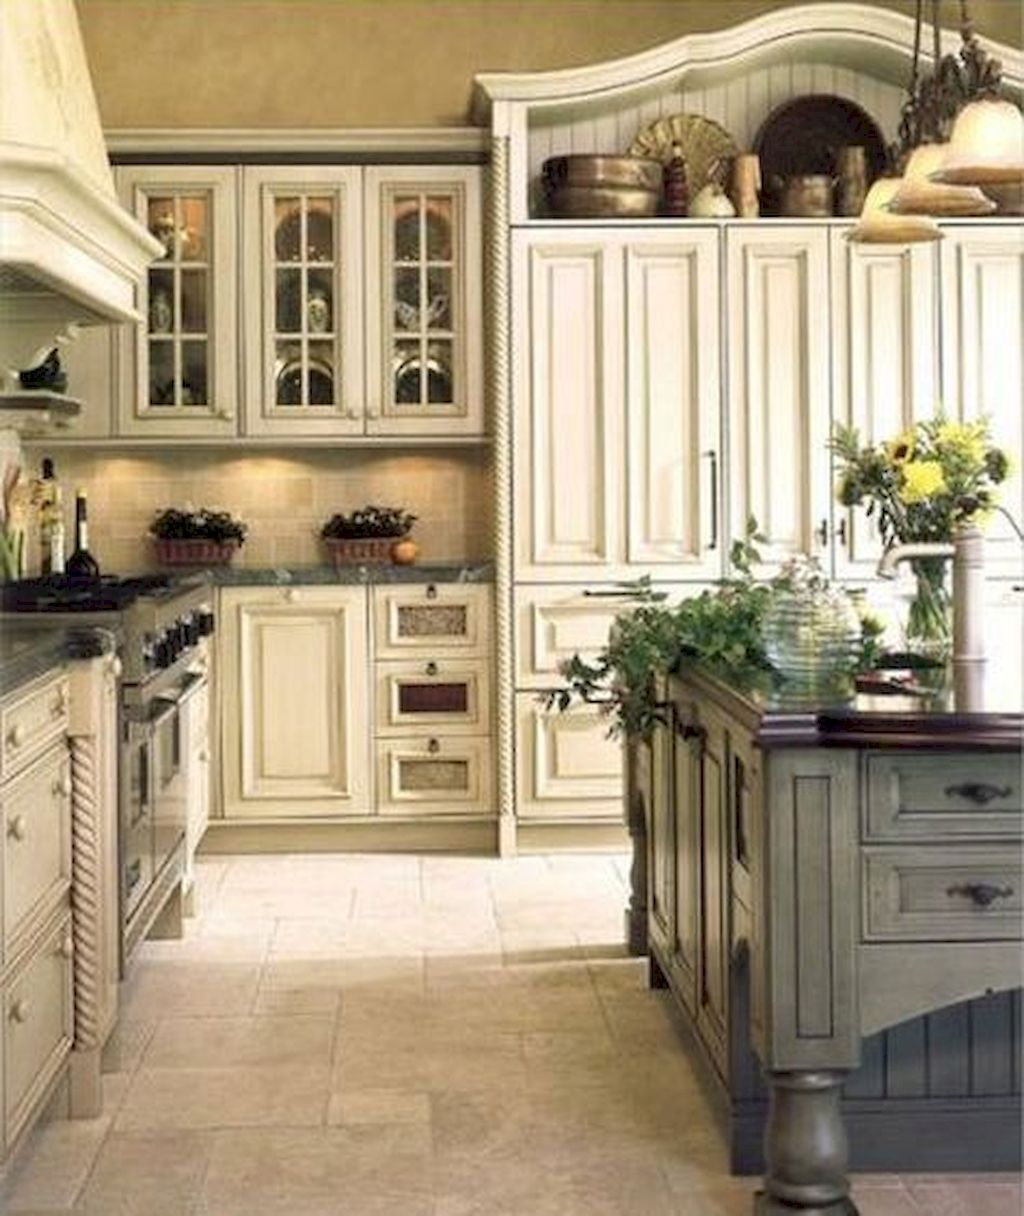 22 French Country Decorating Ideas For Modern Dining Room: French Country Kitchen Design & Decor Ideas (22)